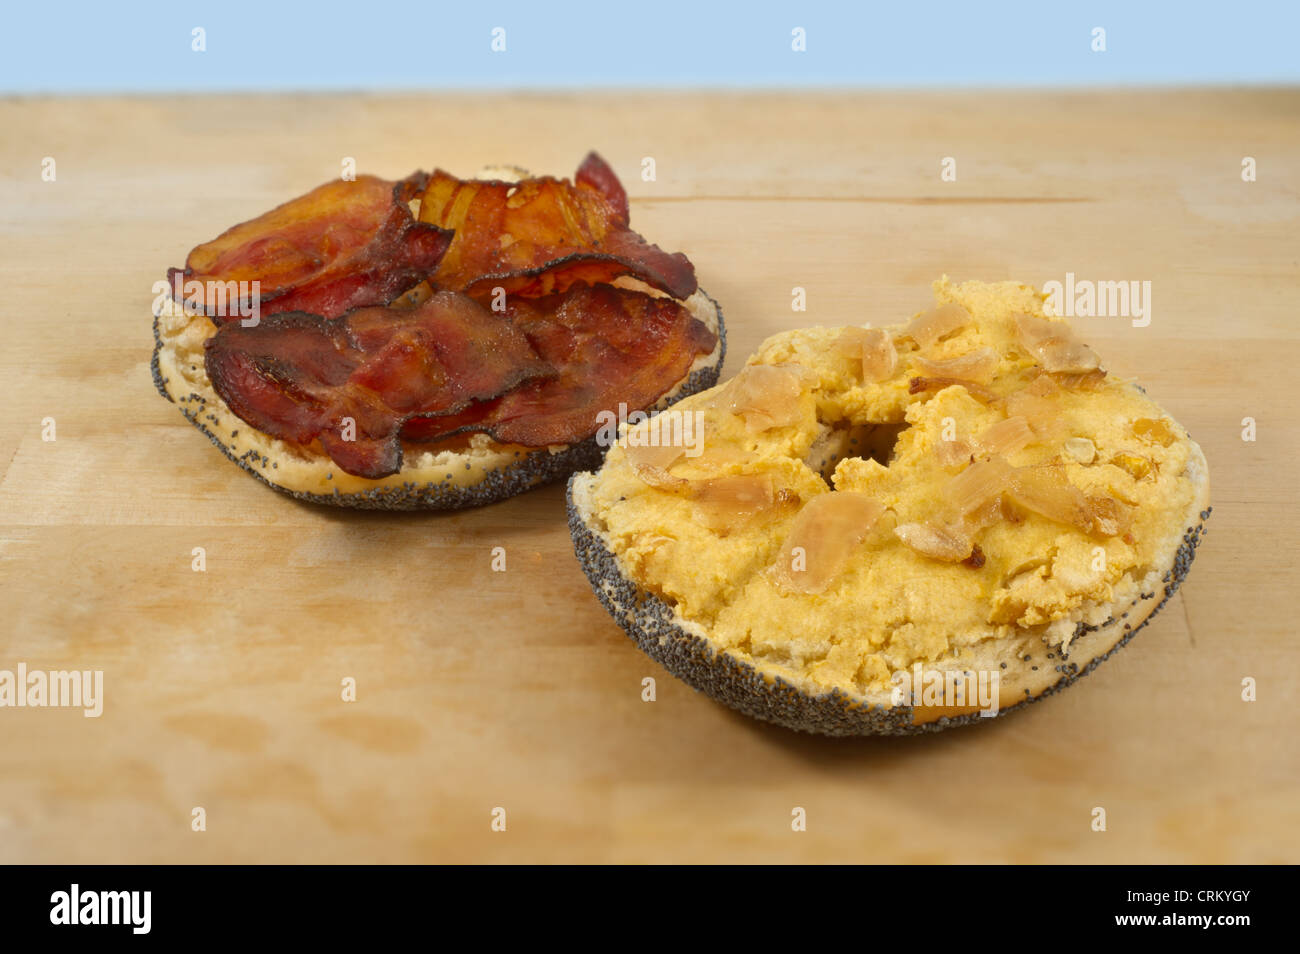 Bagel with humus and bacon - Stock Image